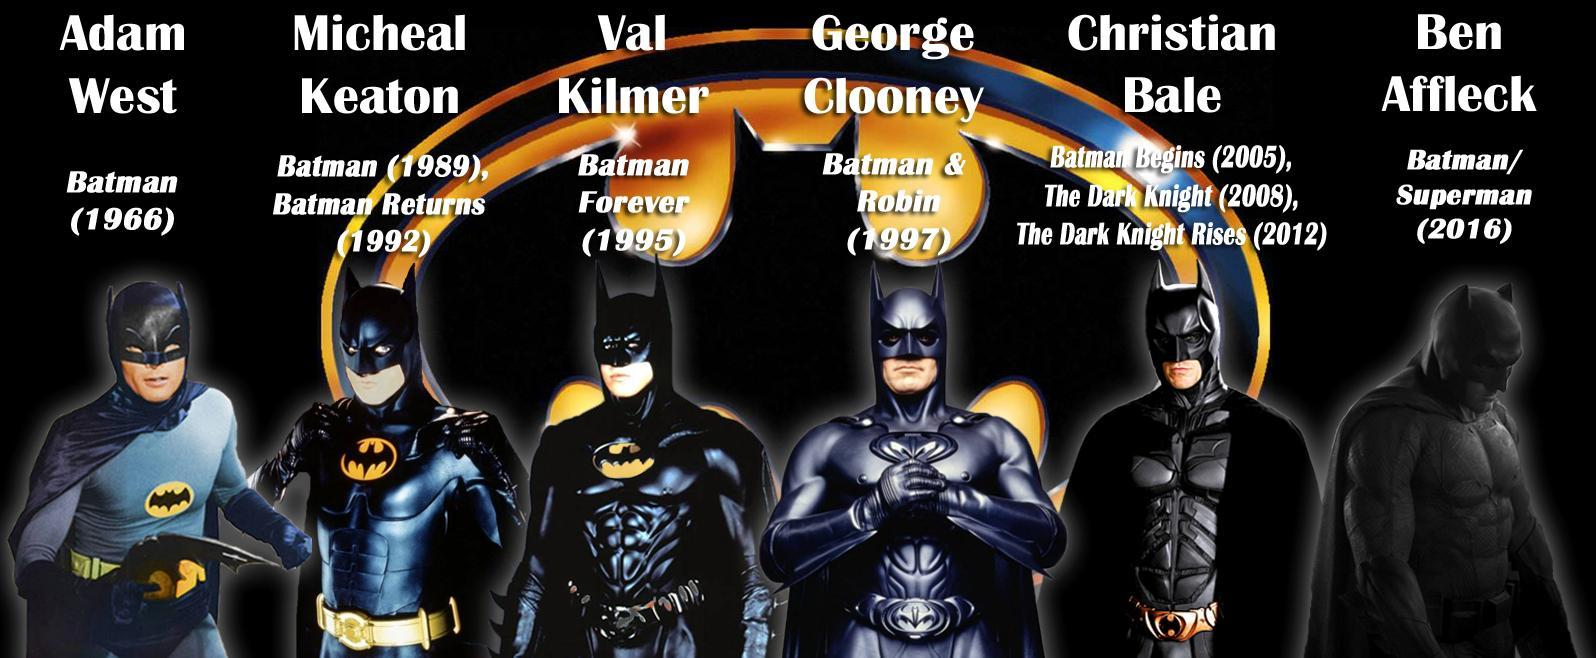 In your opinion, who is the best actor that portrays Batman. (In any movie or TV show that you want)